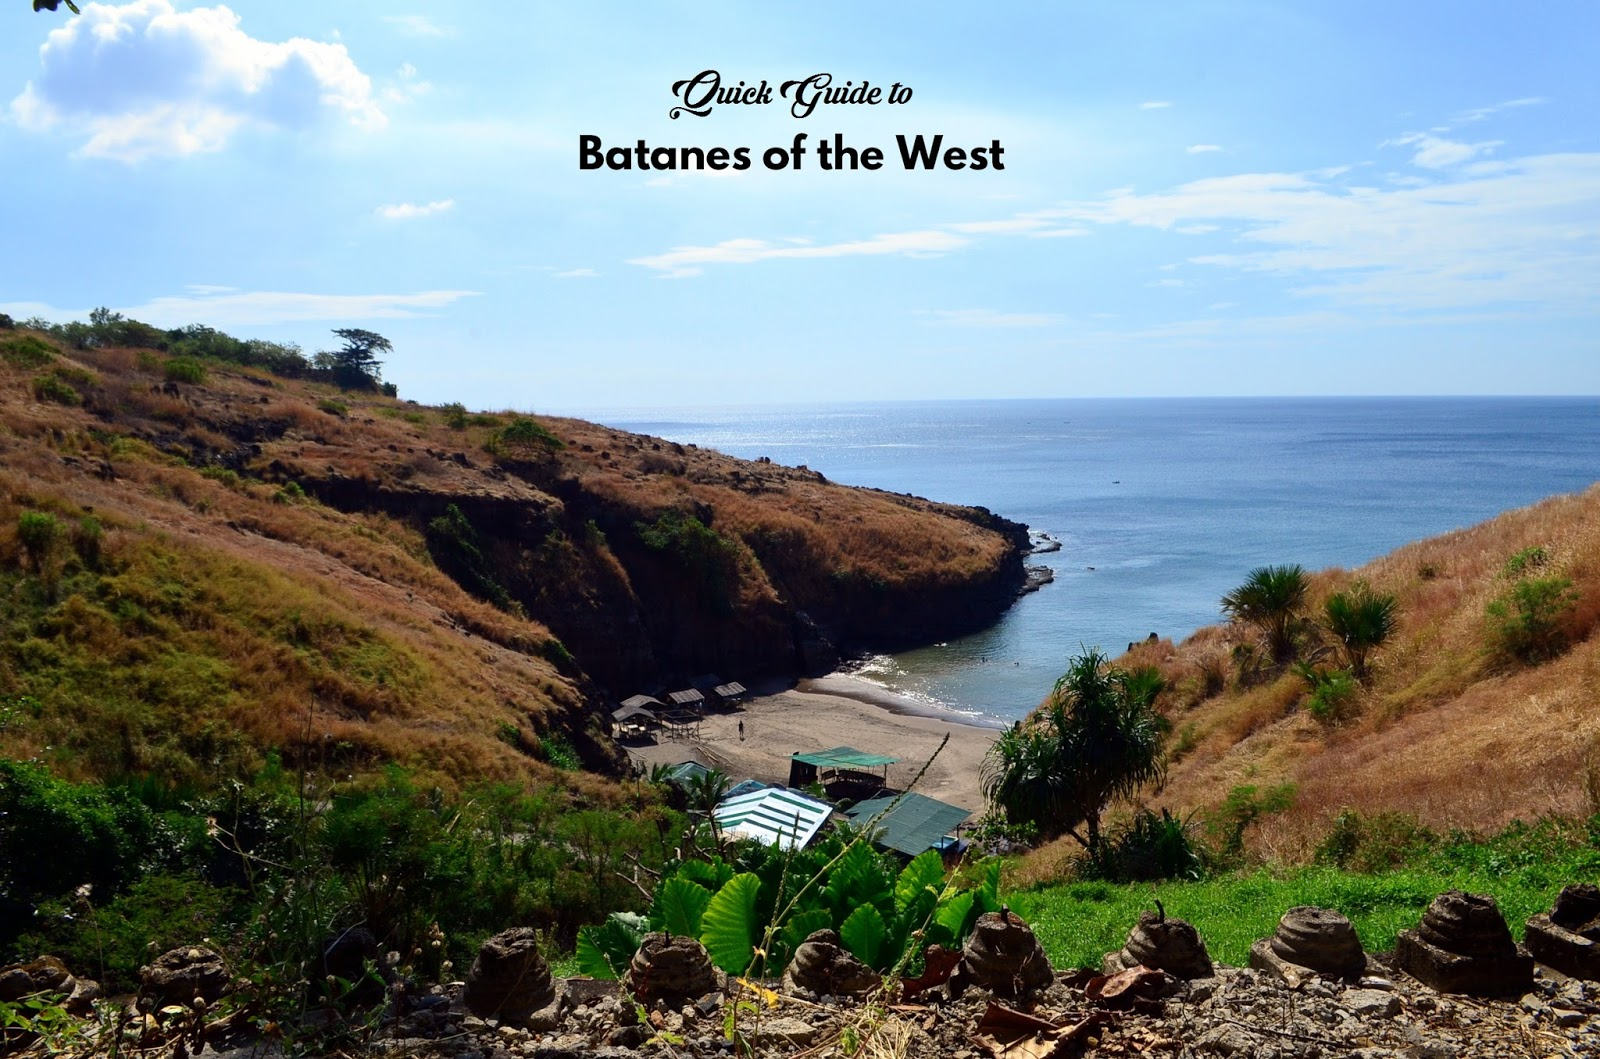 Batanes of the West